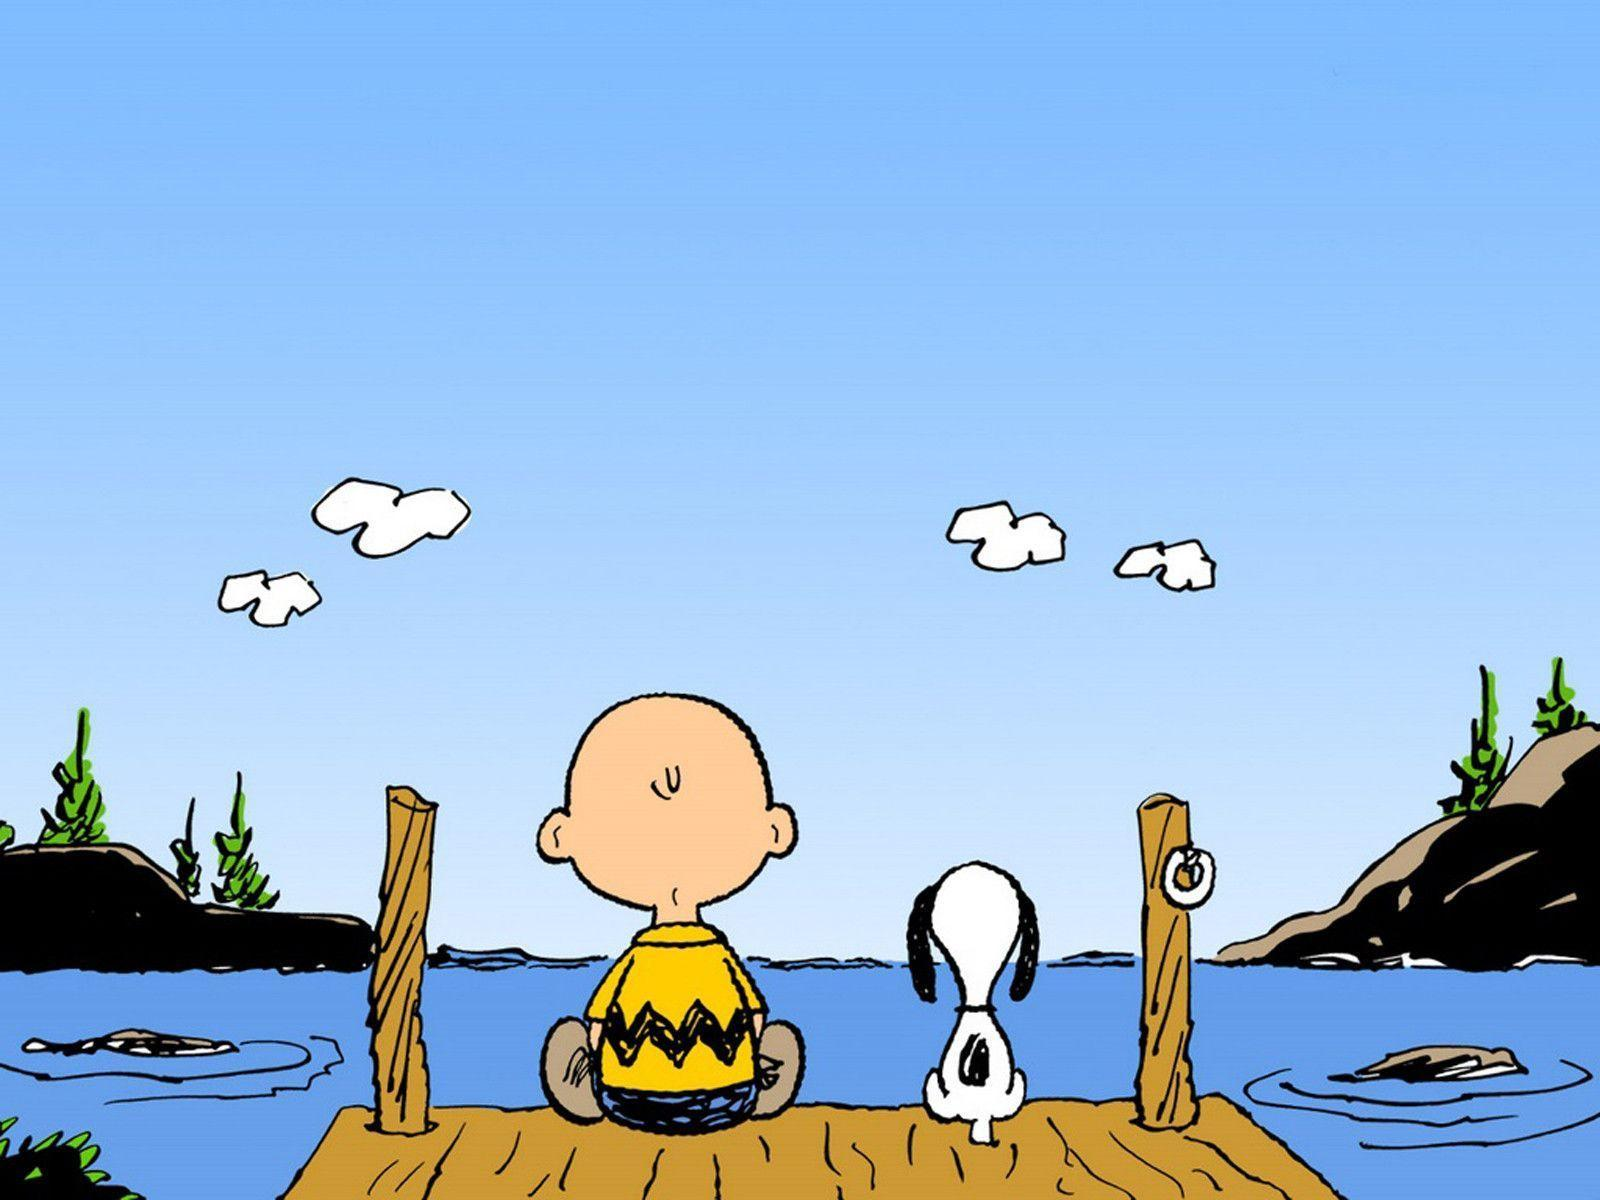 Charlie Brown Wallpapers - Top Free